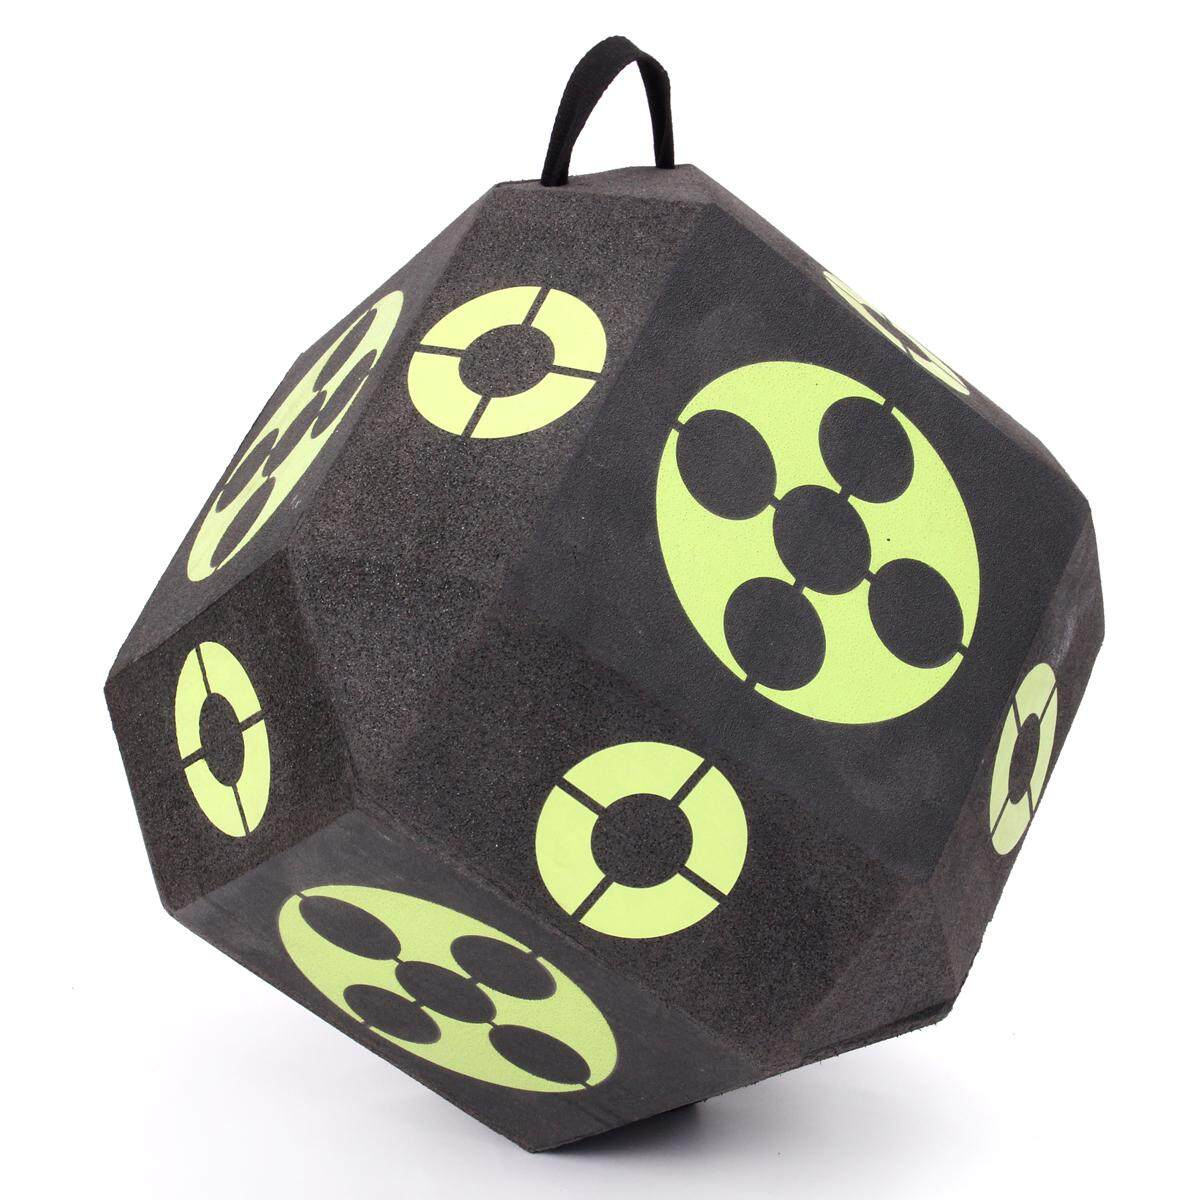 3D Cube Archery Target 18-Sided High Density Self Healing XPE Outdoor Reusable